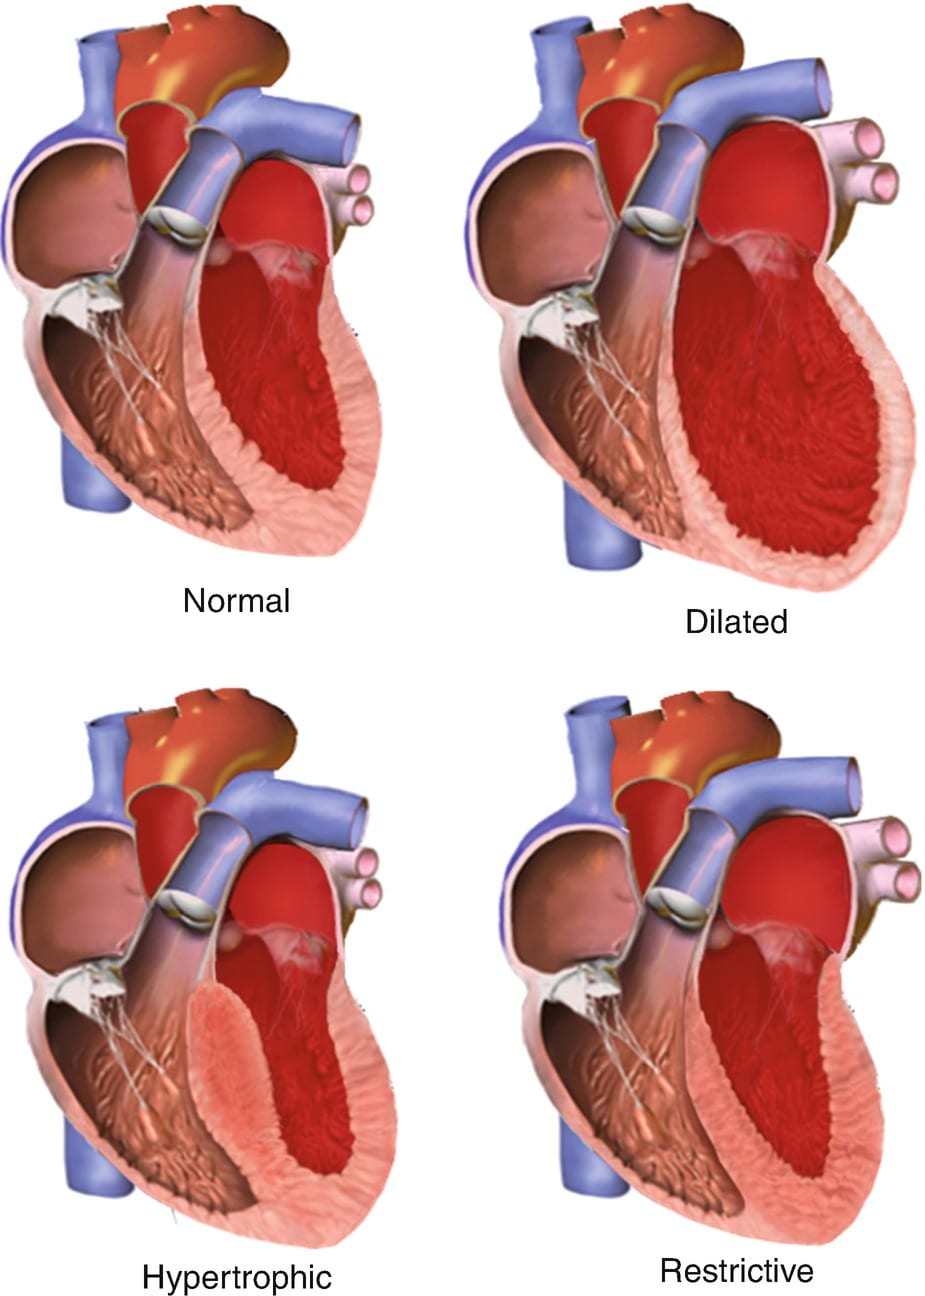 Illustrations of types of normal heart vs dilated, hypertrophic and restrictive cardiomyopathy